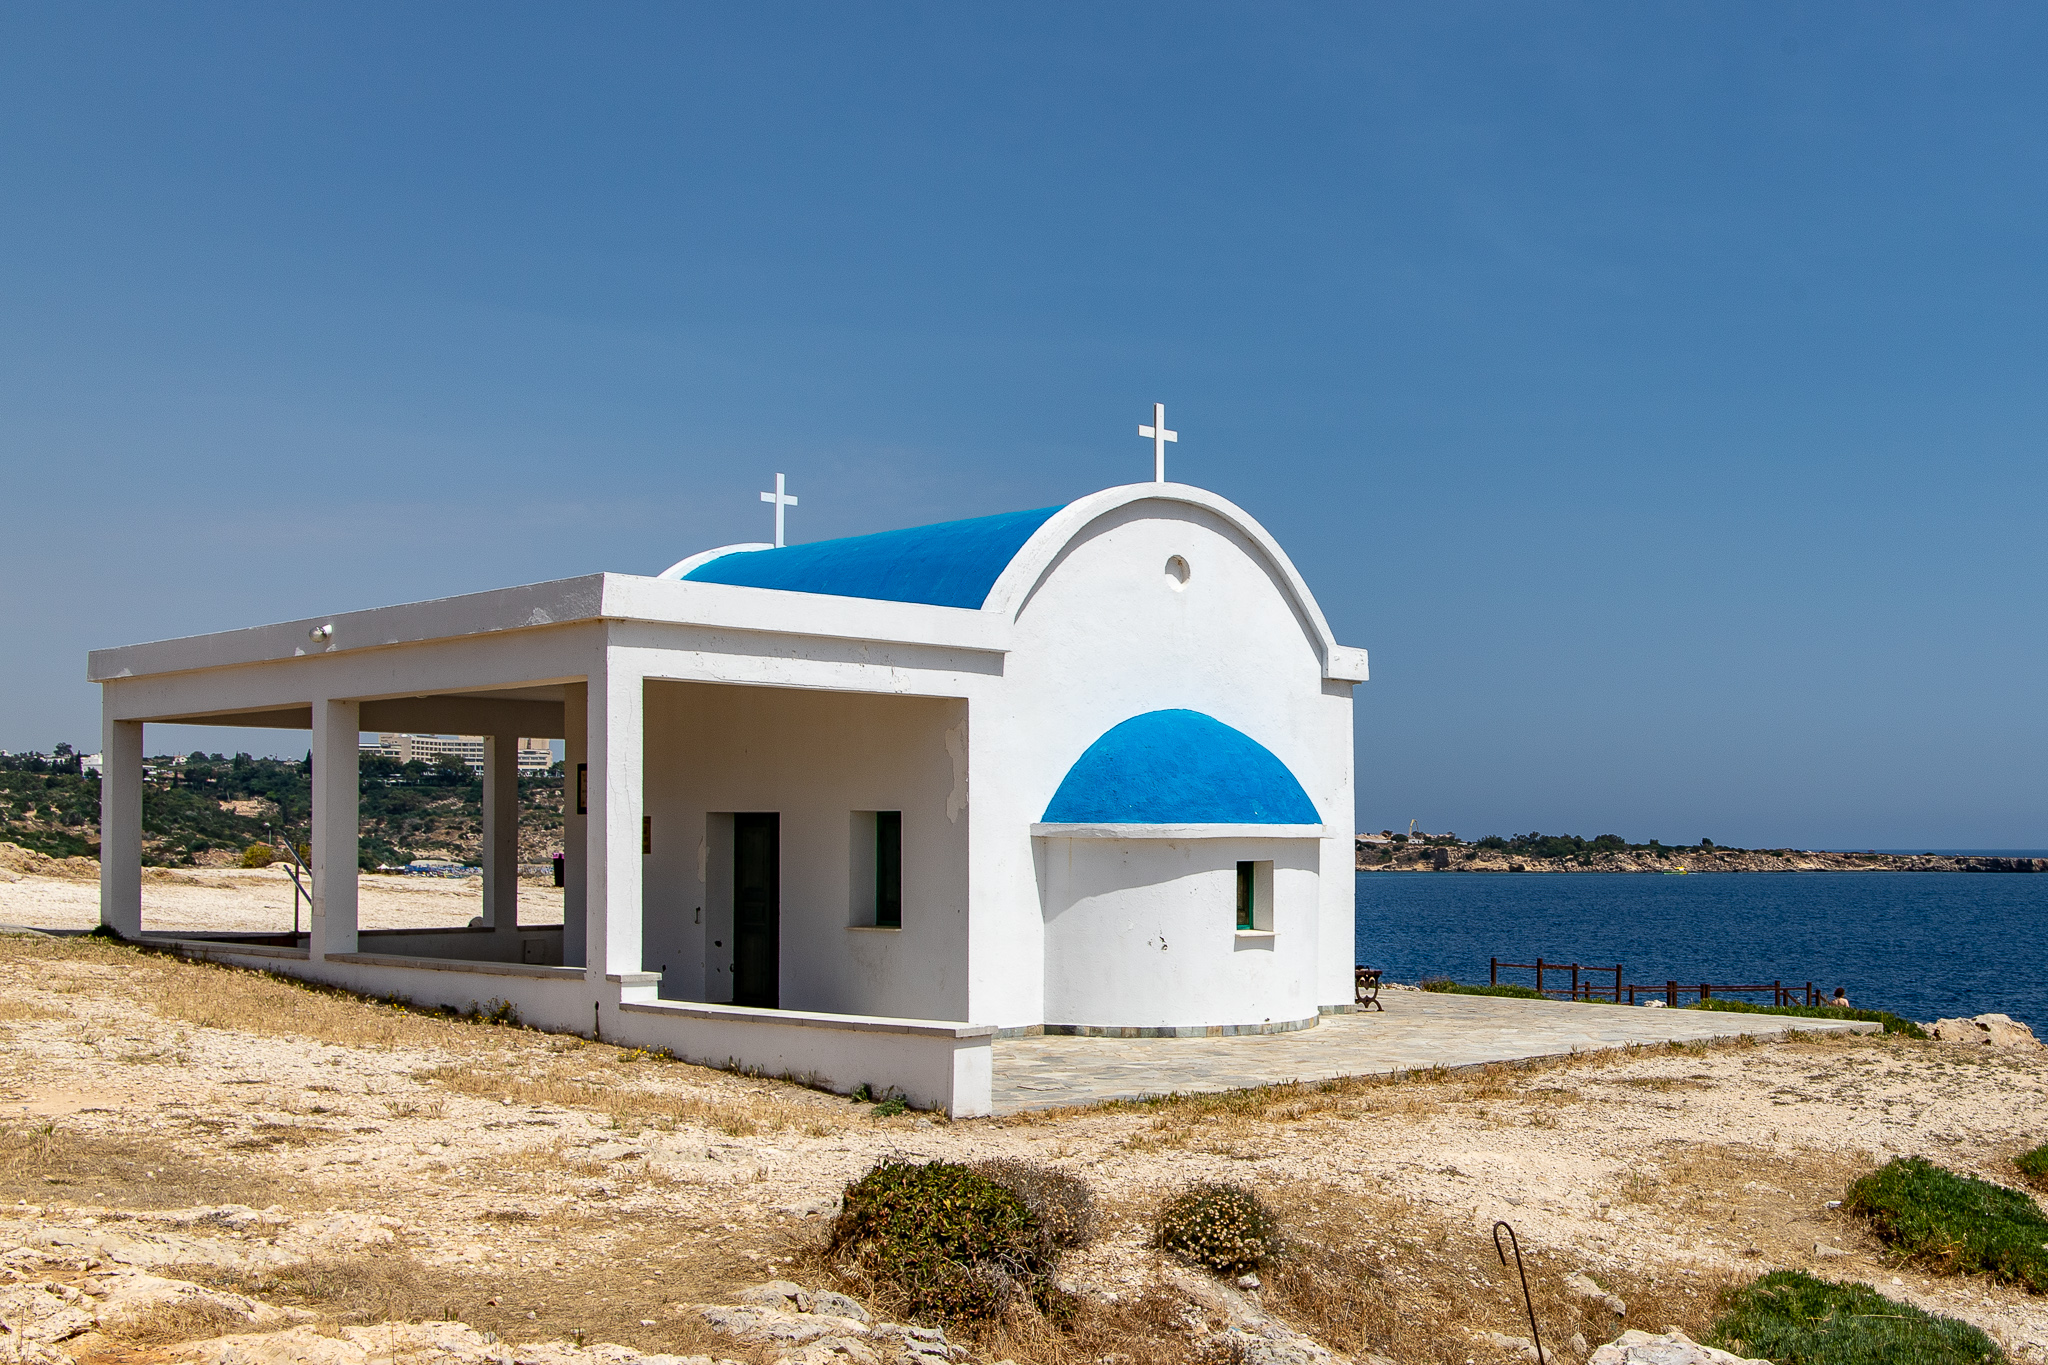 The Agioi Anargyri Church idyllically situated above some sea caves